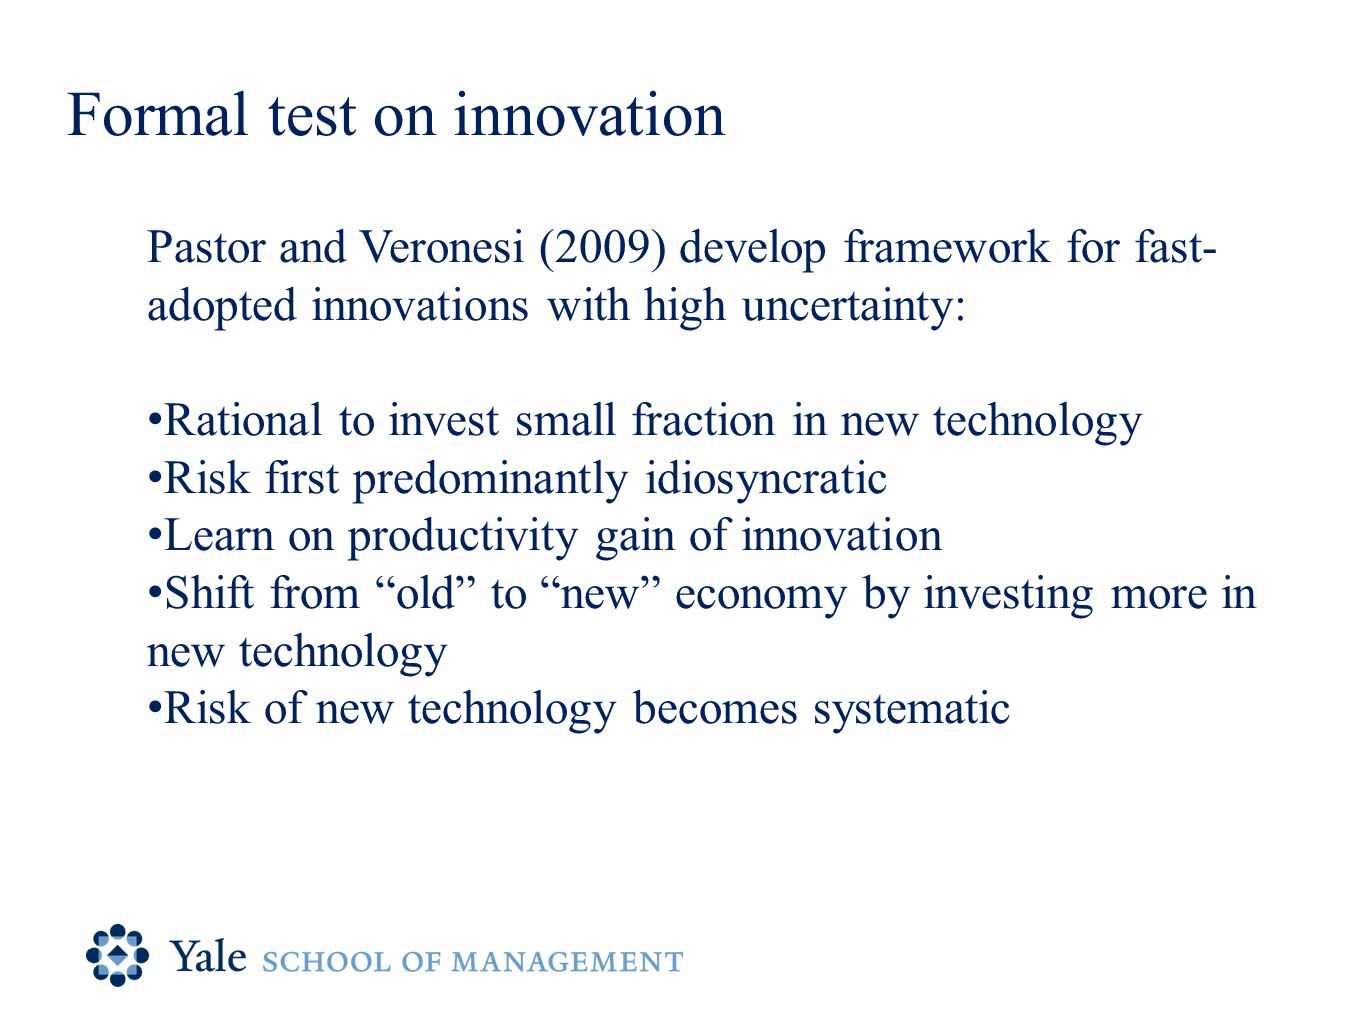 Formal test on innovation Pastor and Veronesi (2009) develop framework for fast- adopted innovations with high uncertainty: Rational to invest small fraction in new technology Risk first predominantly idiosyncratic Learn on productivity gain of innovation Shift from old to new economy by investing more in new technology Risk of new technology becomes systematic